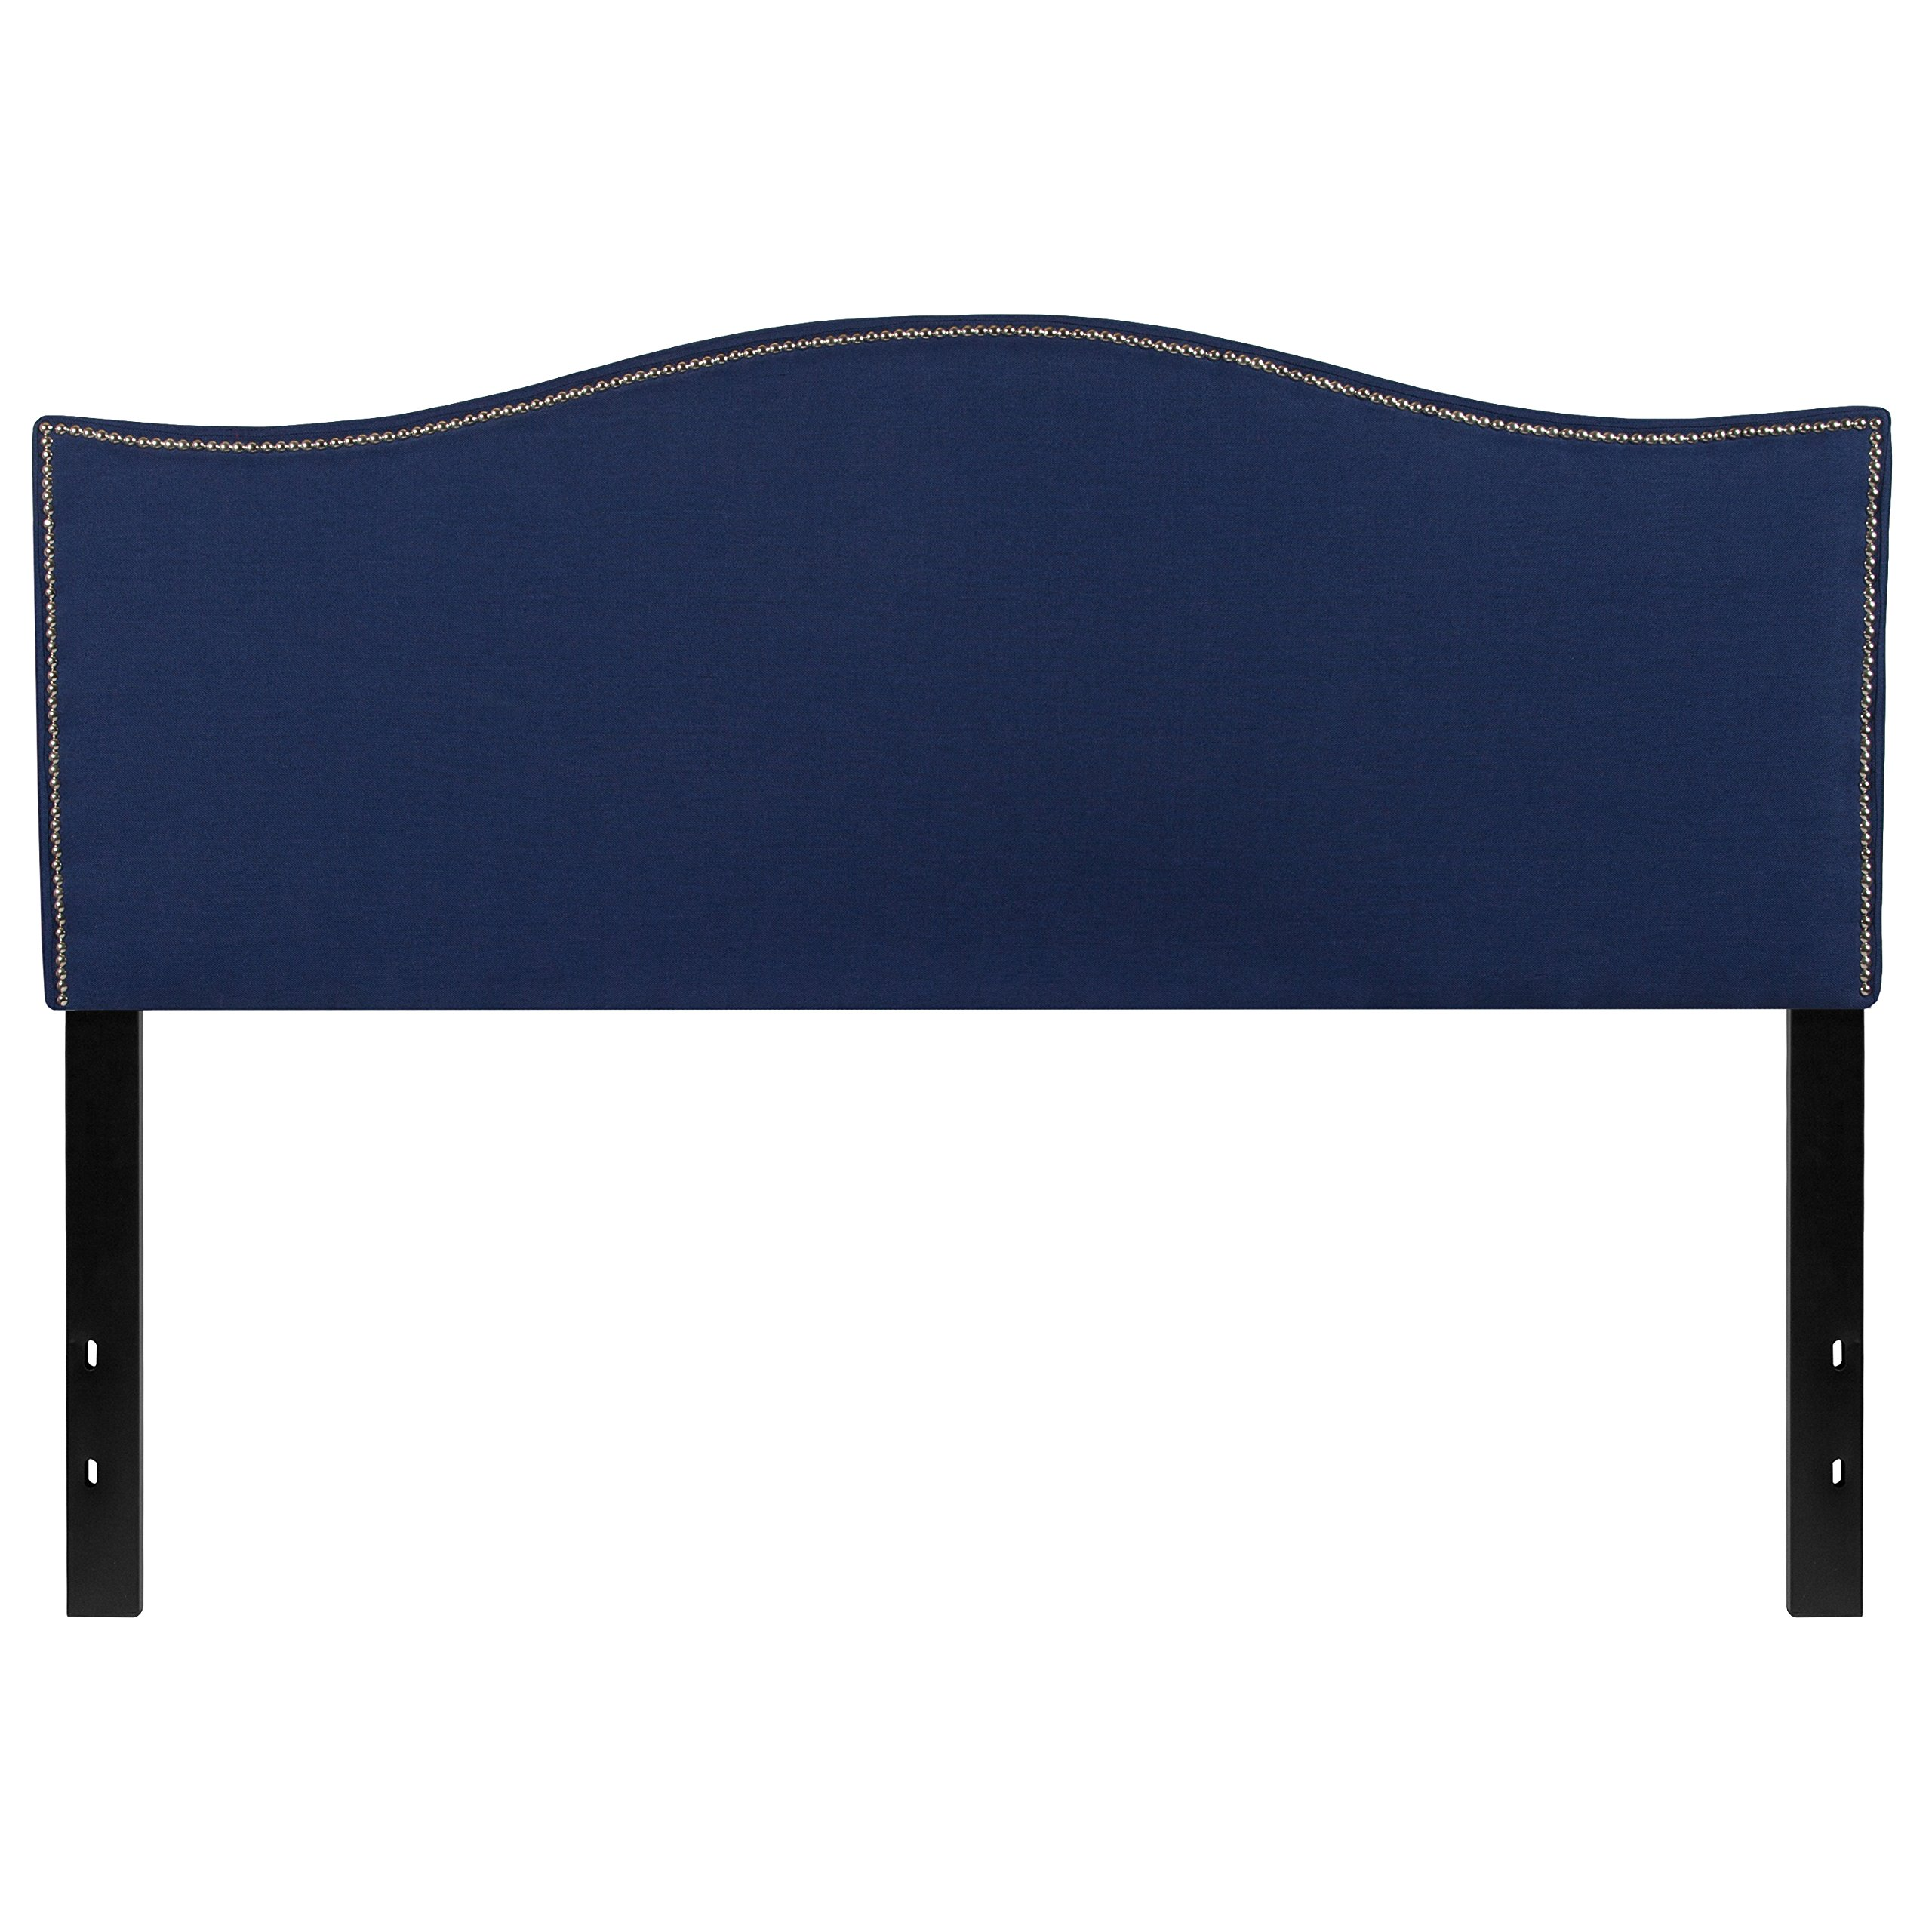 Flash Furniture Lexington Upholstered Queen Size Headboard with Decorative Nail Trim in Navy Fabric